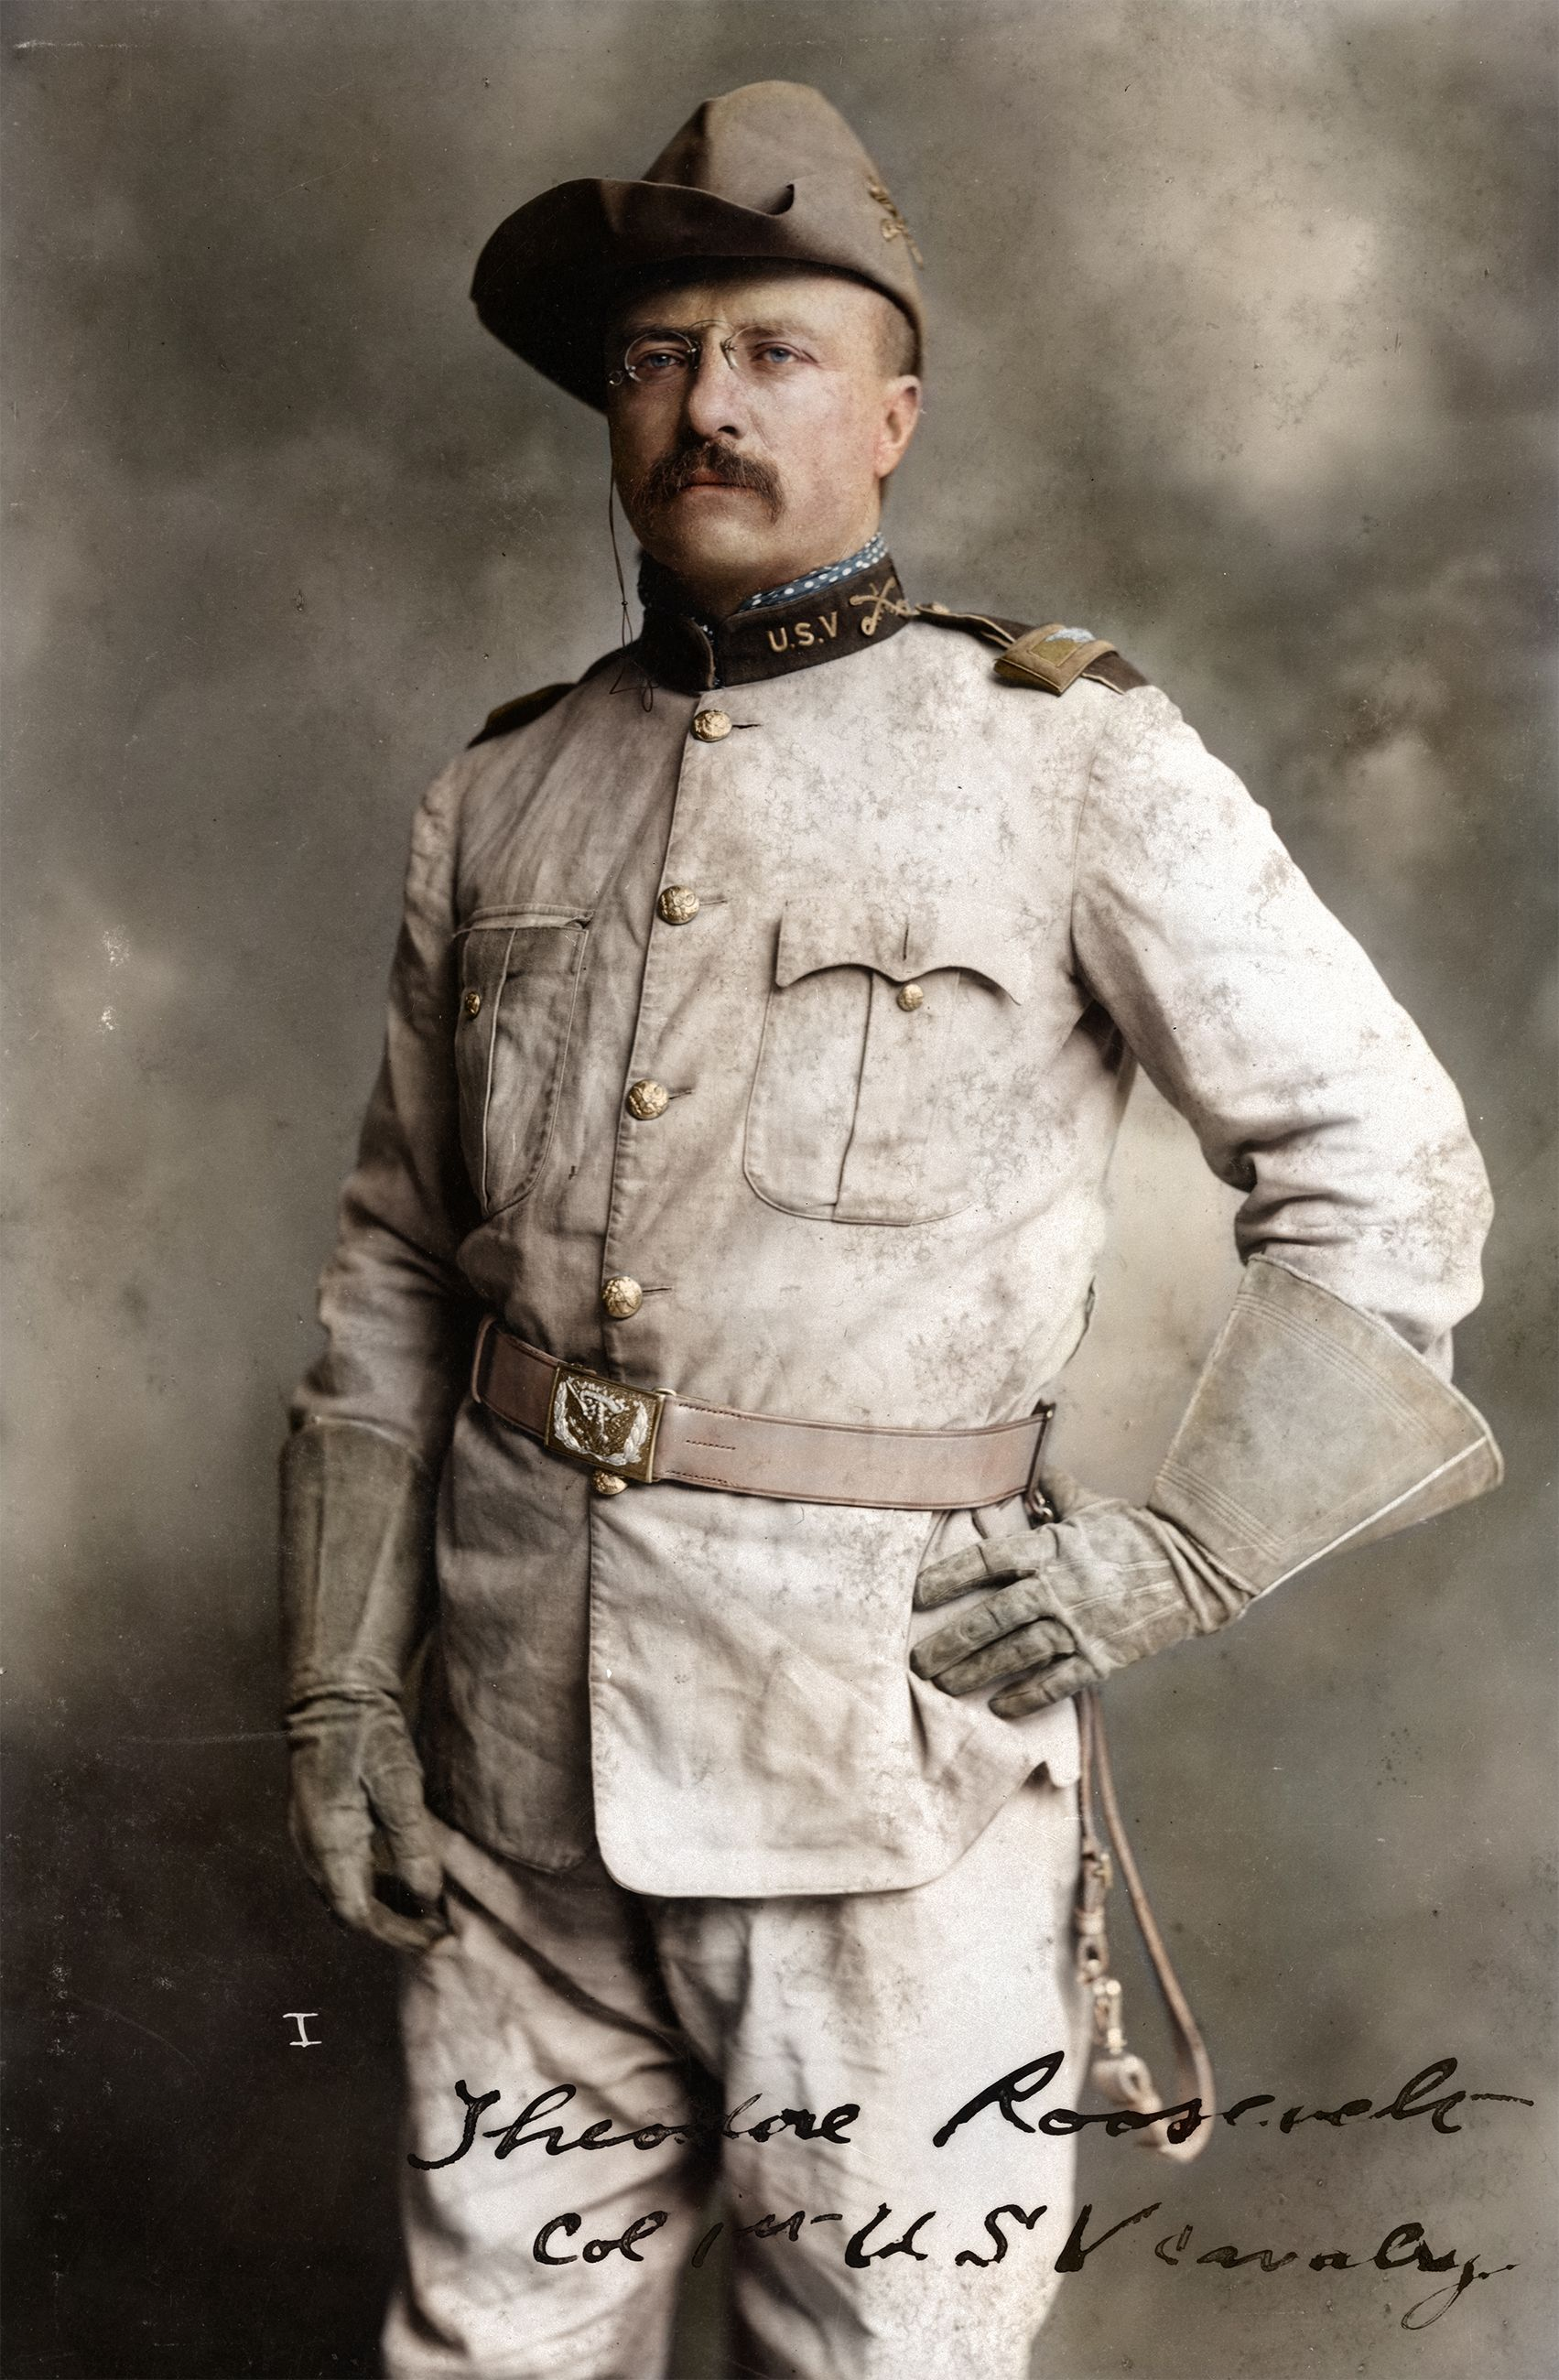 Theodore Roosevelt: Could This Amazing Newly Colorized Image Be What Inspired The Design Of The Penny?